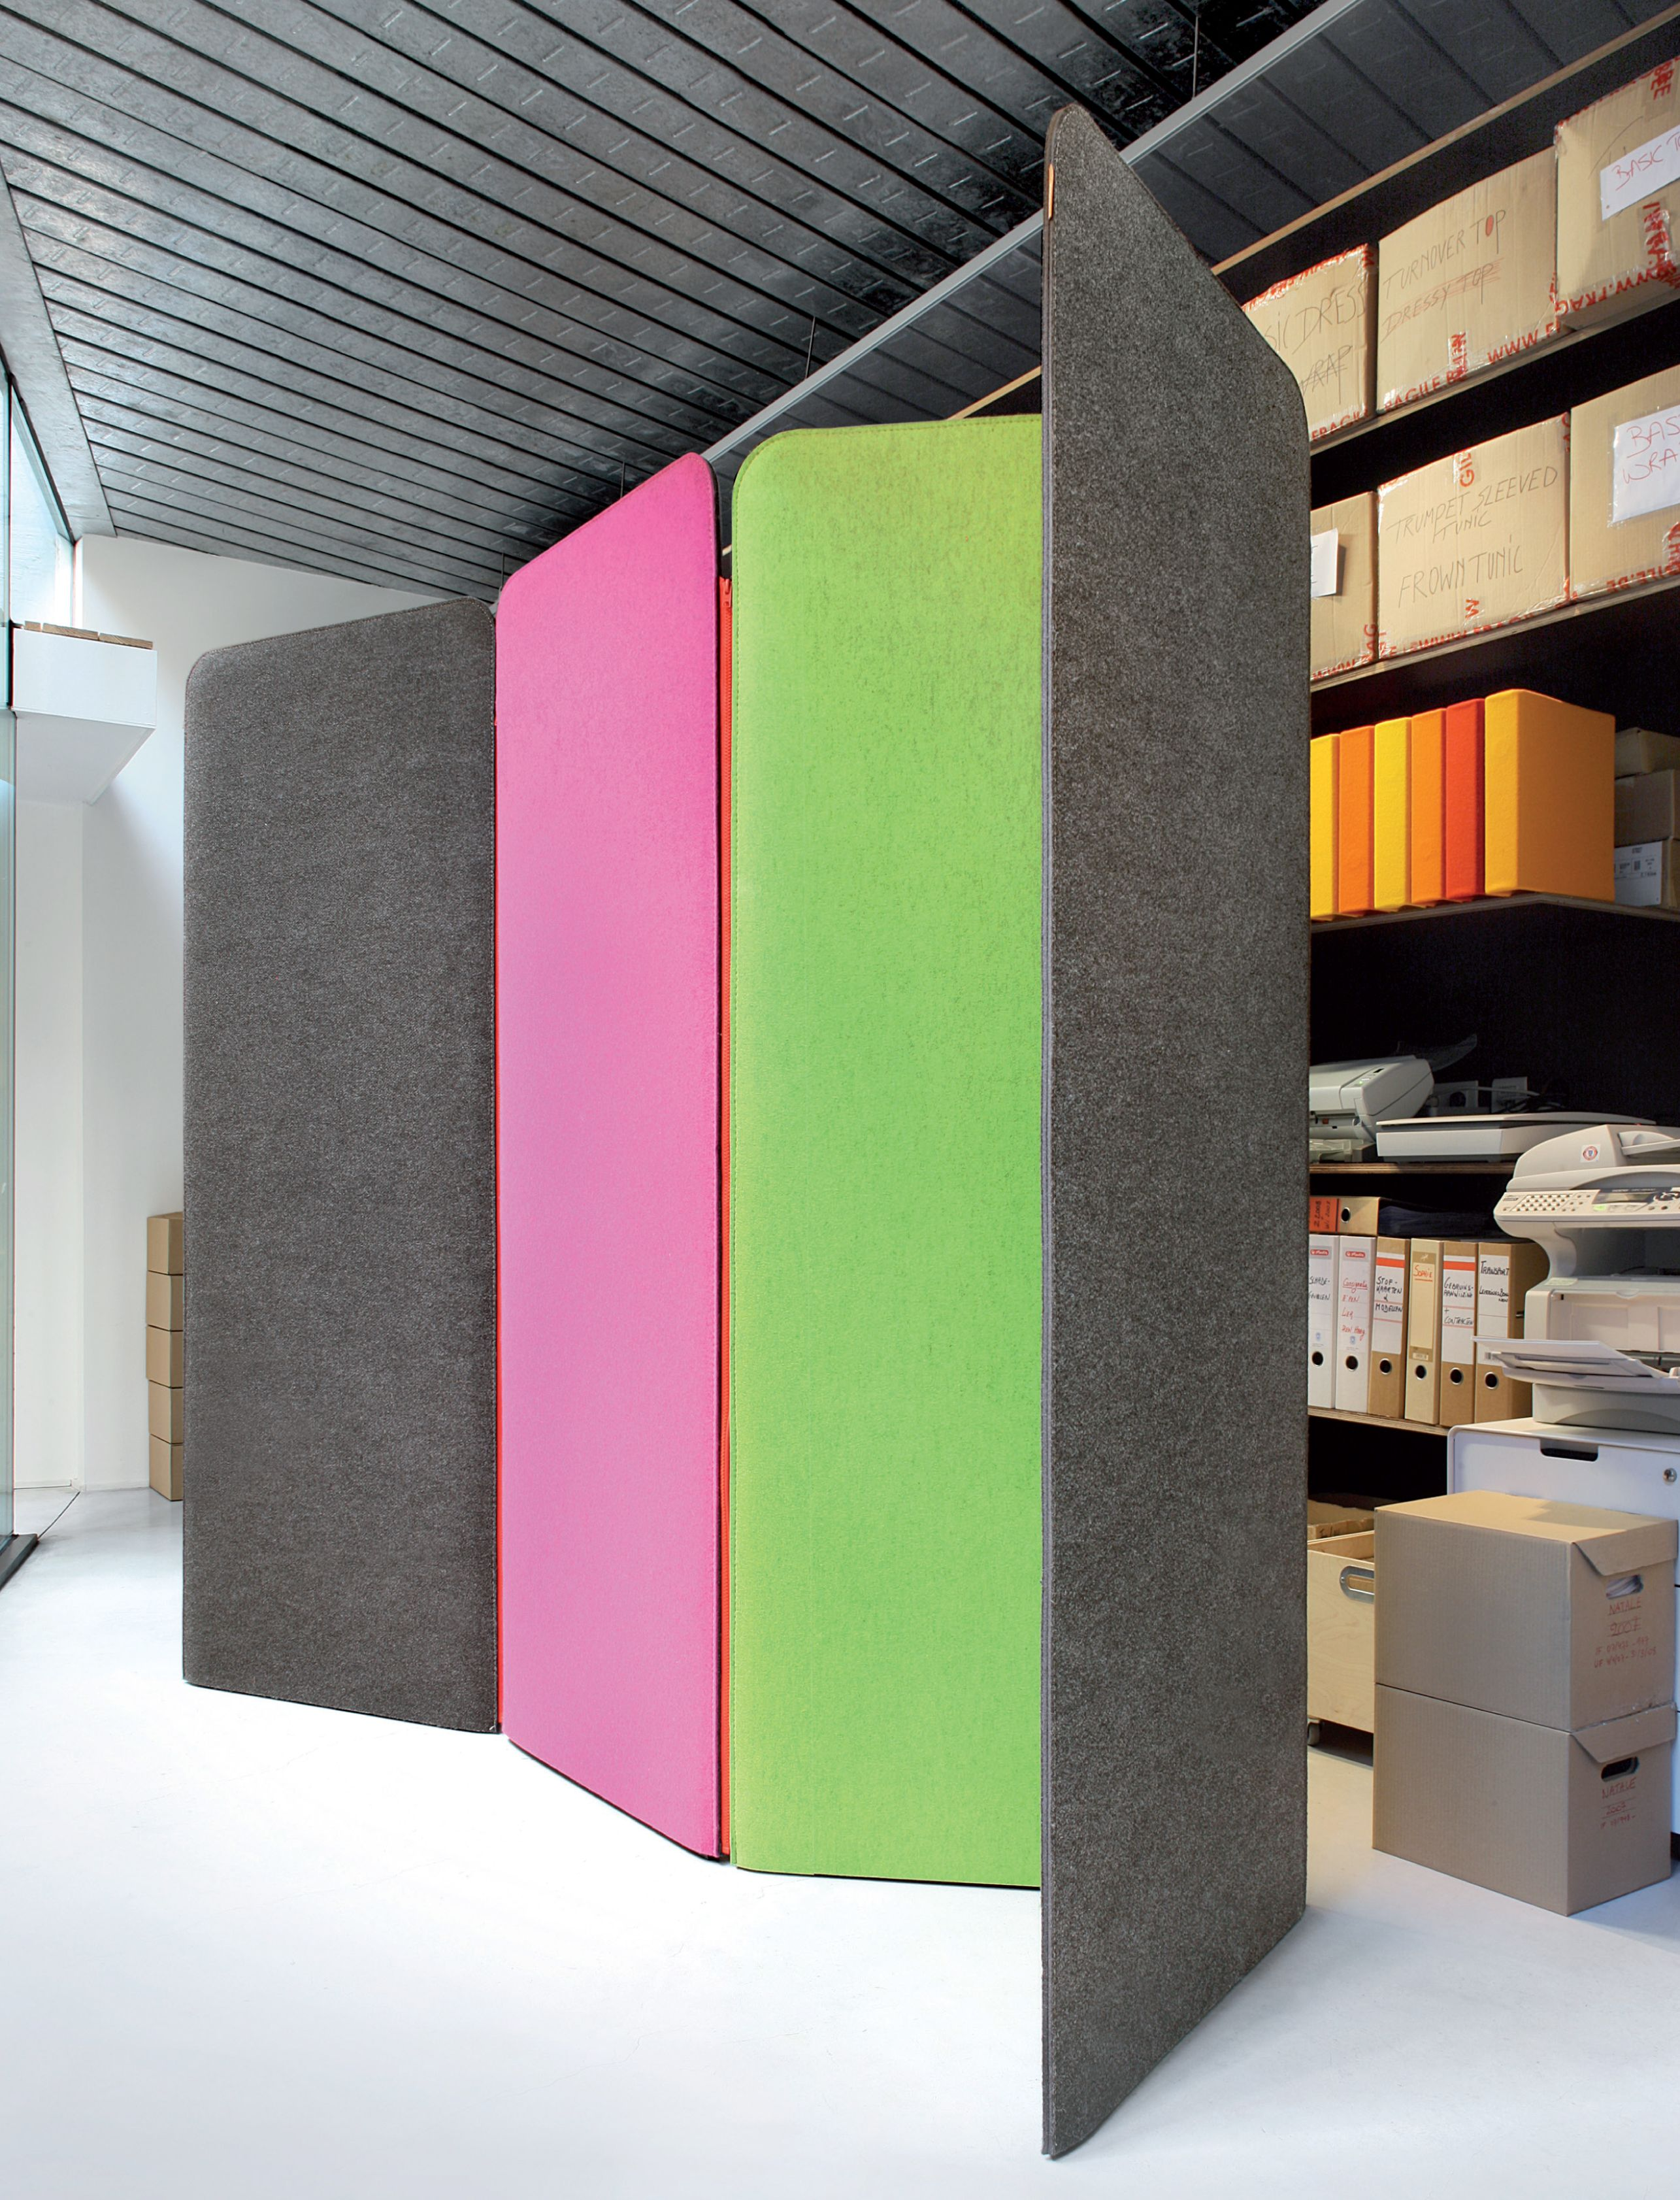 Büro Trennwand Mit Tür Room Dividers From Buzzispace Design Ideas Raumteiler